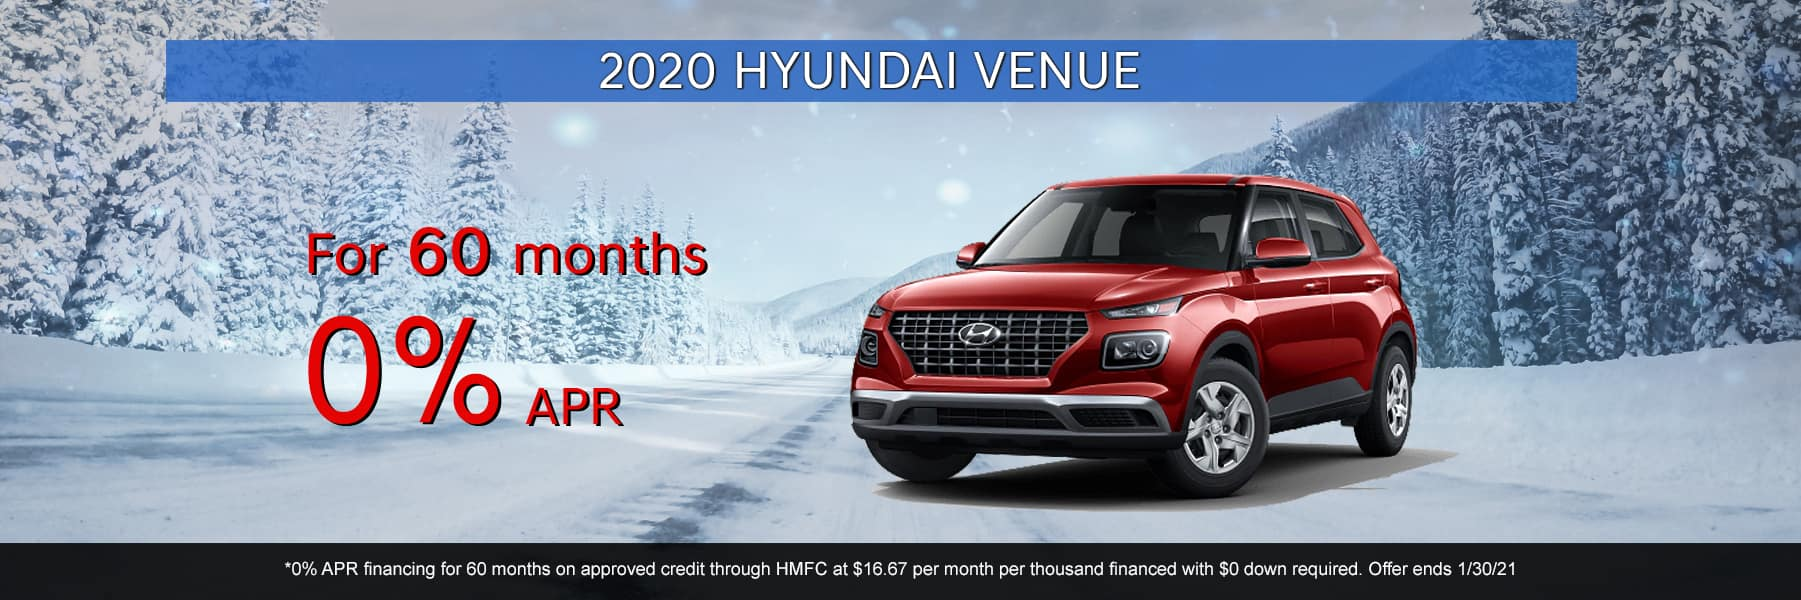 2020-Hyundai-Venue-Jan21